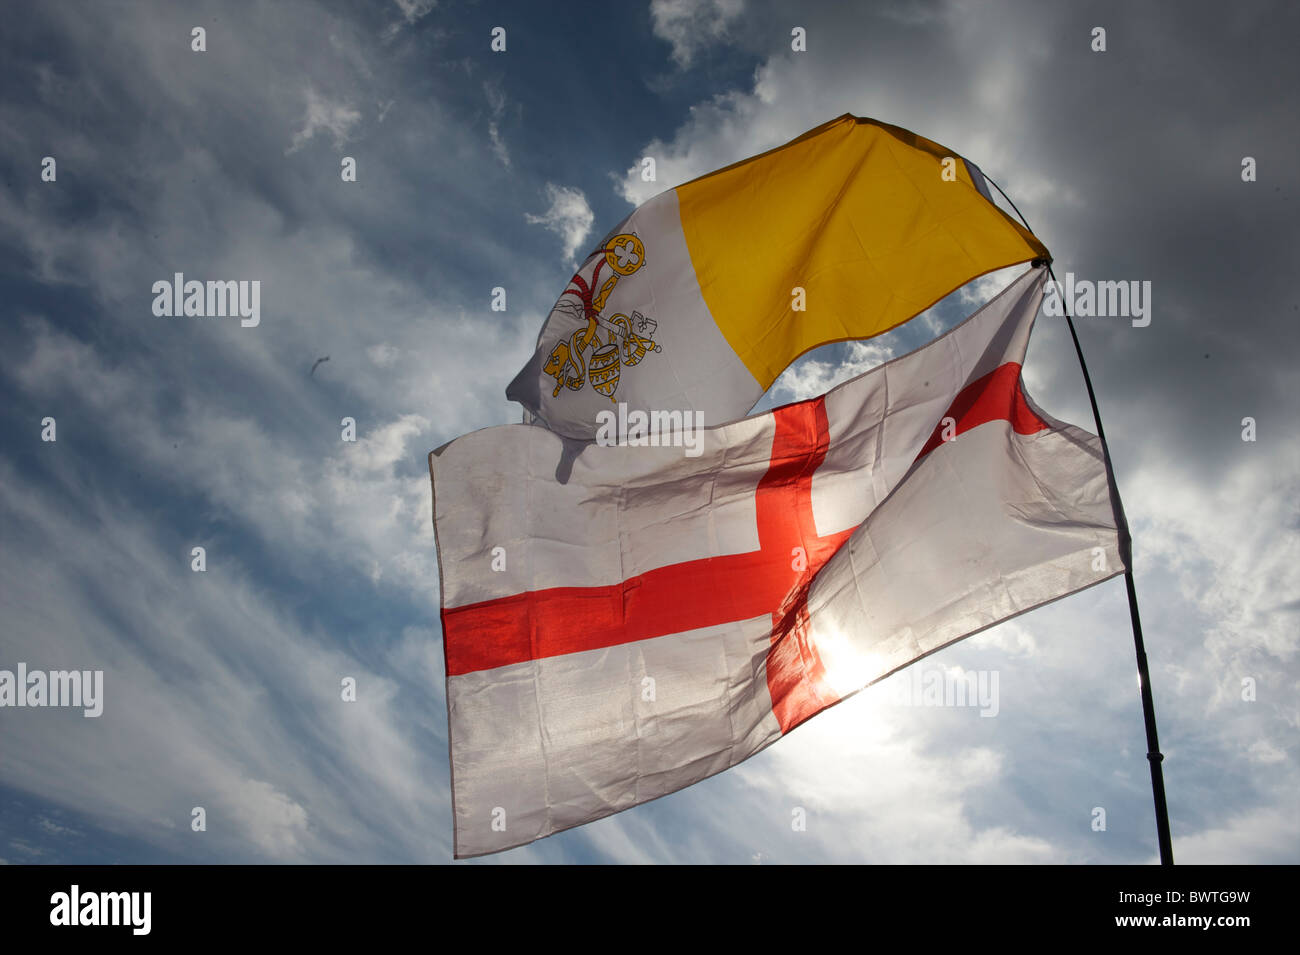 The flag of the papacy and England fly above the estimated 80,000 pilgrims who congregated in Hyde Park, London - Stock Image